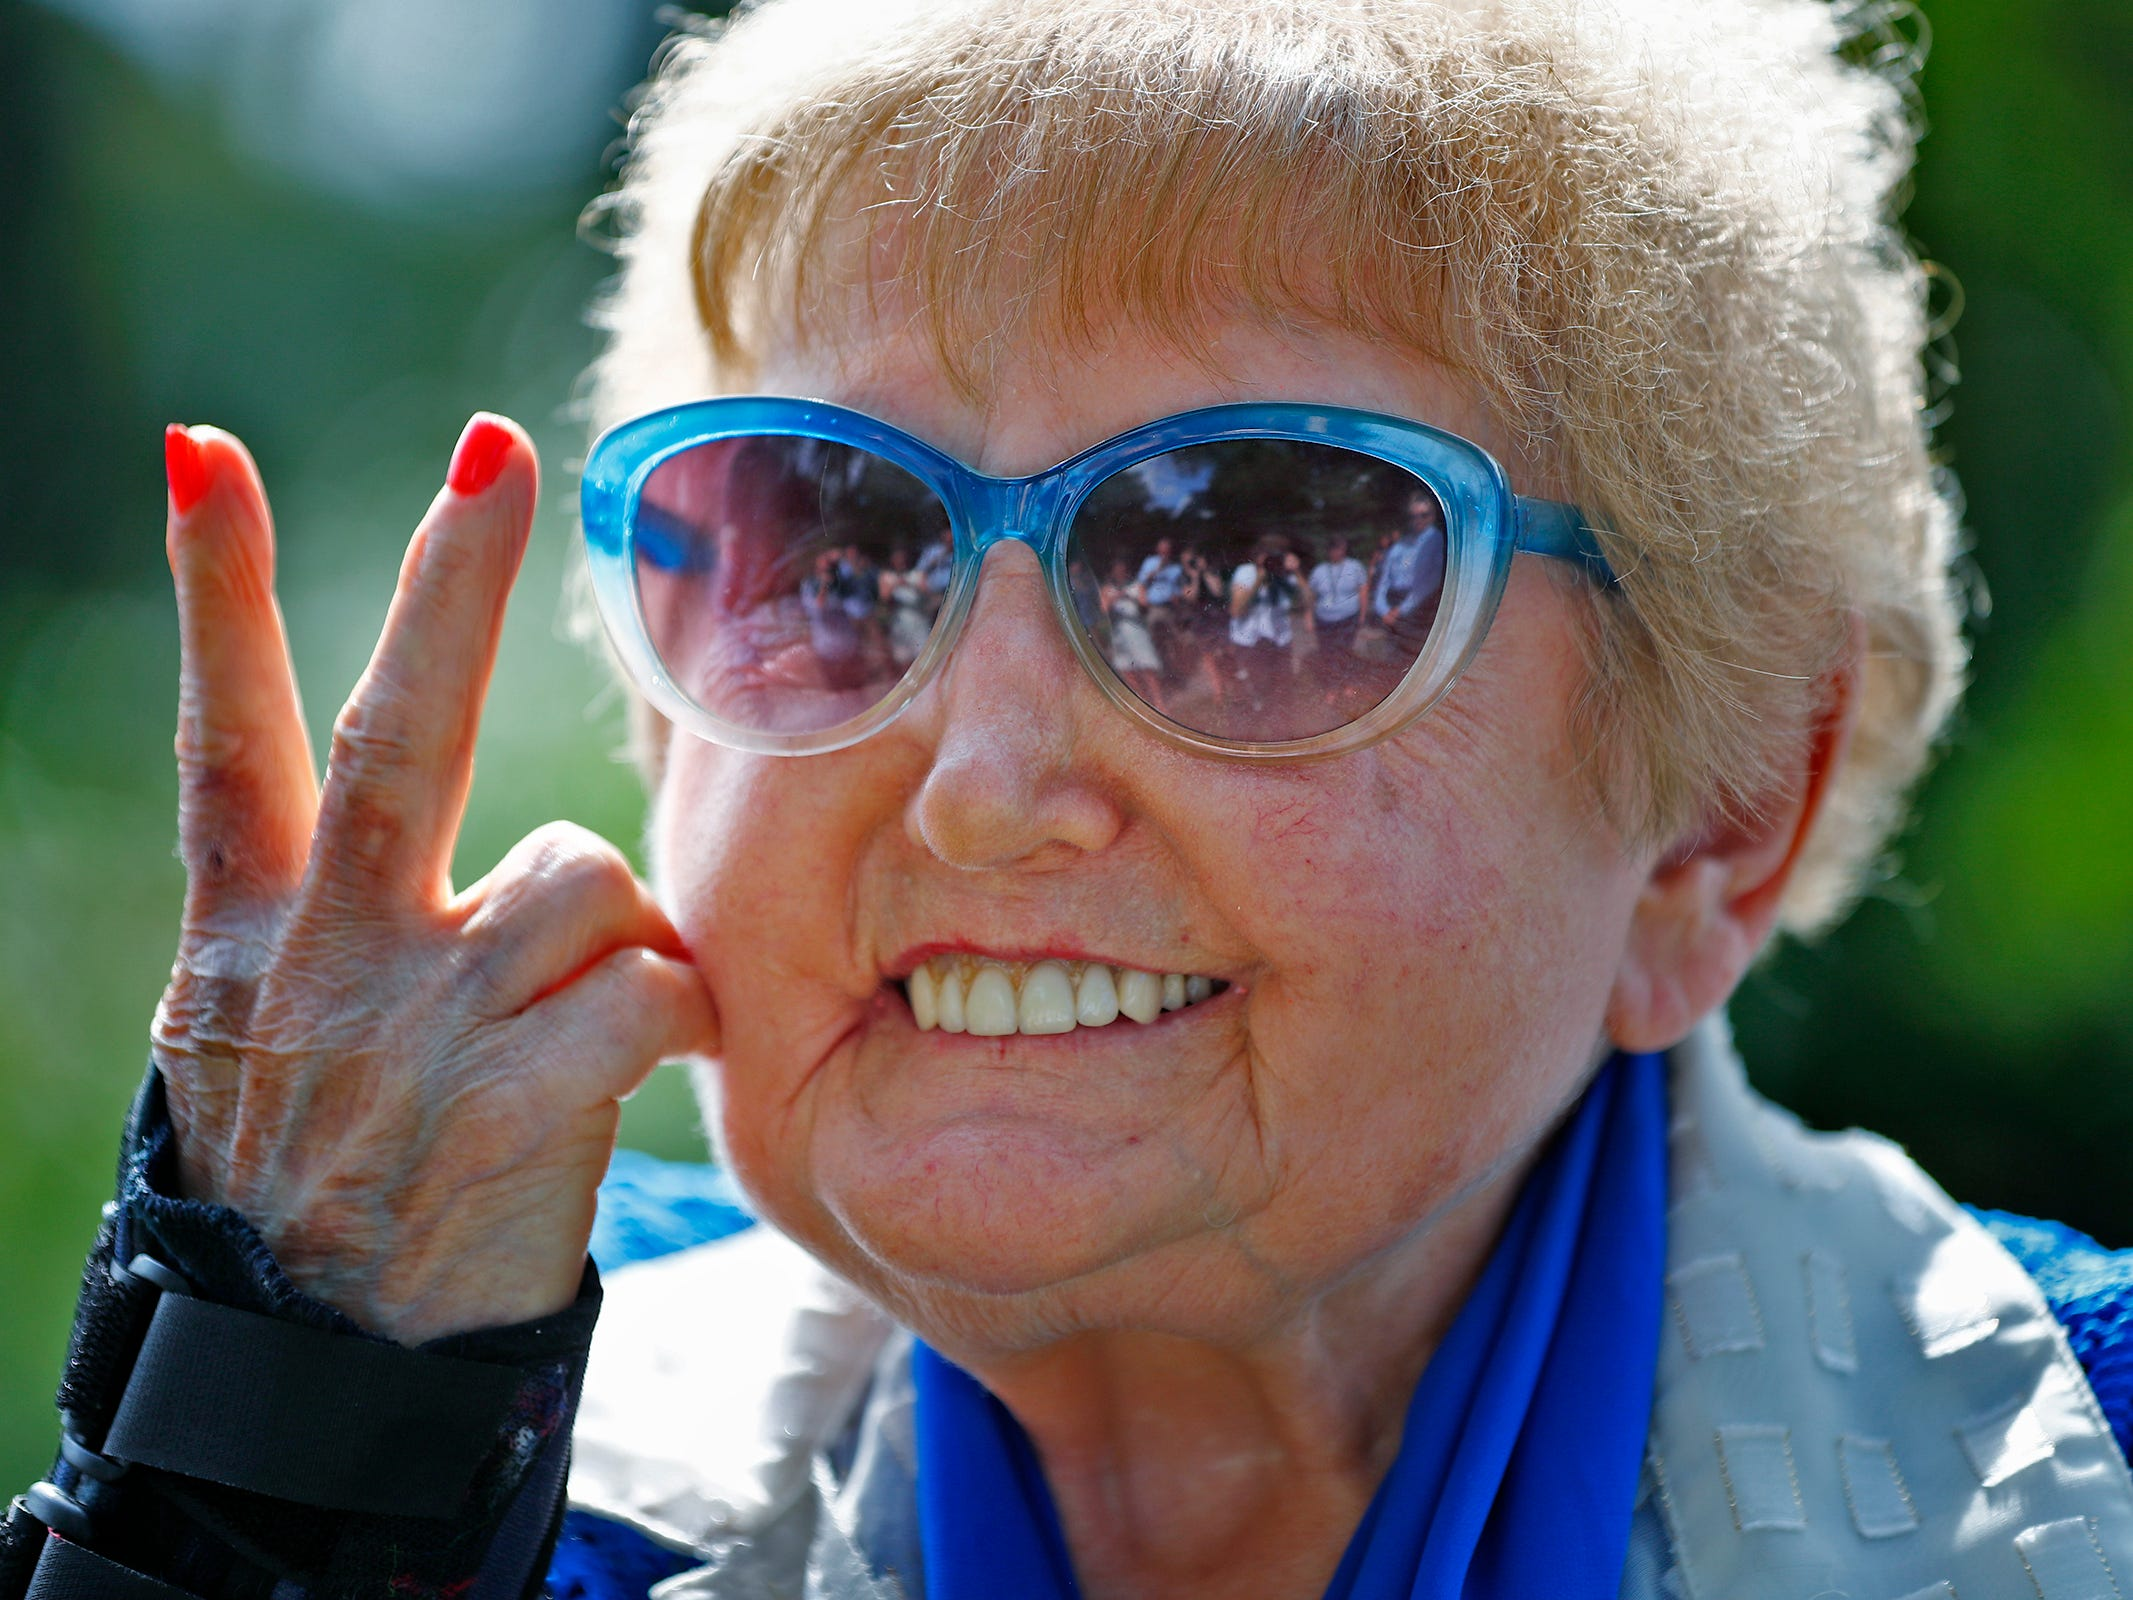 """Holocaust survivor Eva Kor gives the peace sign and smiles during the planting of the Eva Kor Peace Garden at Newfields, Monday, Sept. 17, 2018.  Students viewed the documentary """"Eva,"""" about Holocaust survivor Eva Kor, and then helped in the planting of the Peace Garden.  Kor also spoke with the students, asking them to think of one thing to make the world better."""